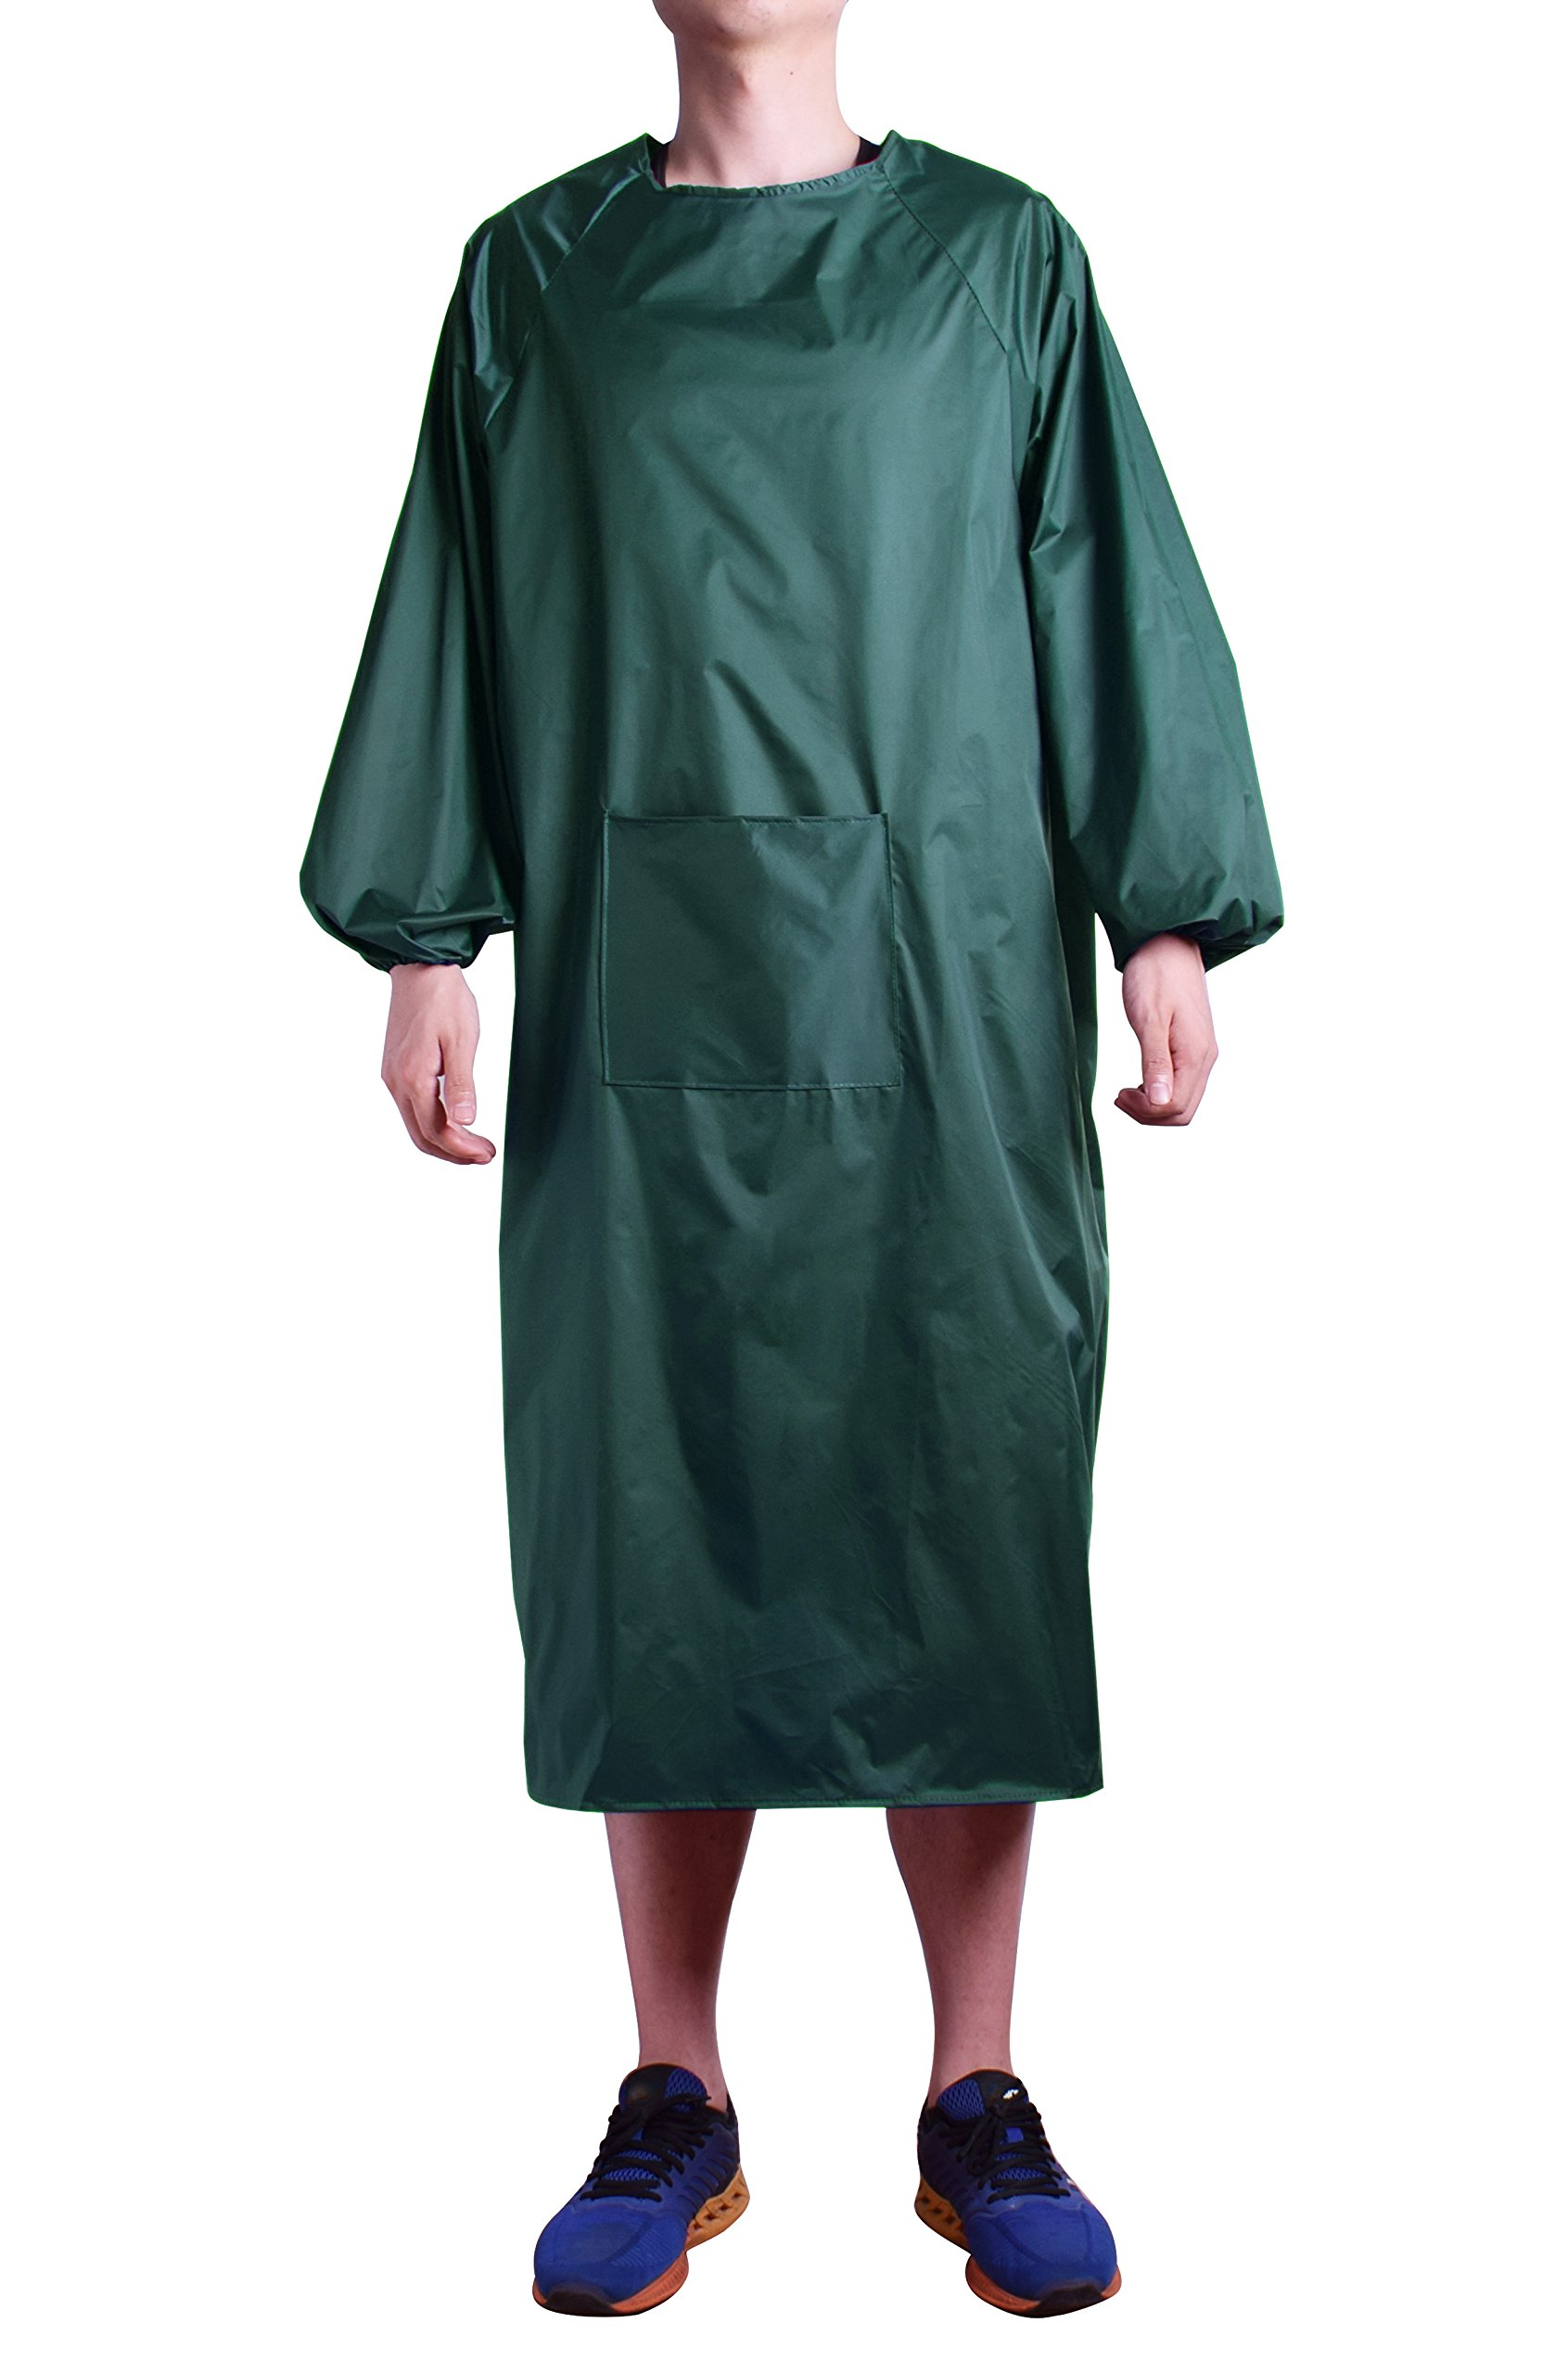 Nanxson(TM) Unisex Multi Fuction Waterproof Long Sleeve Home Kitchen Overall Apron CF3015 (army green)